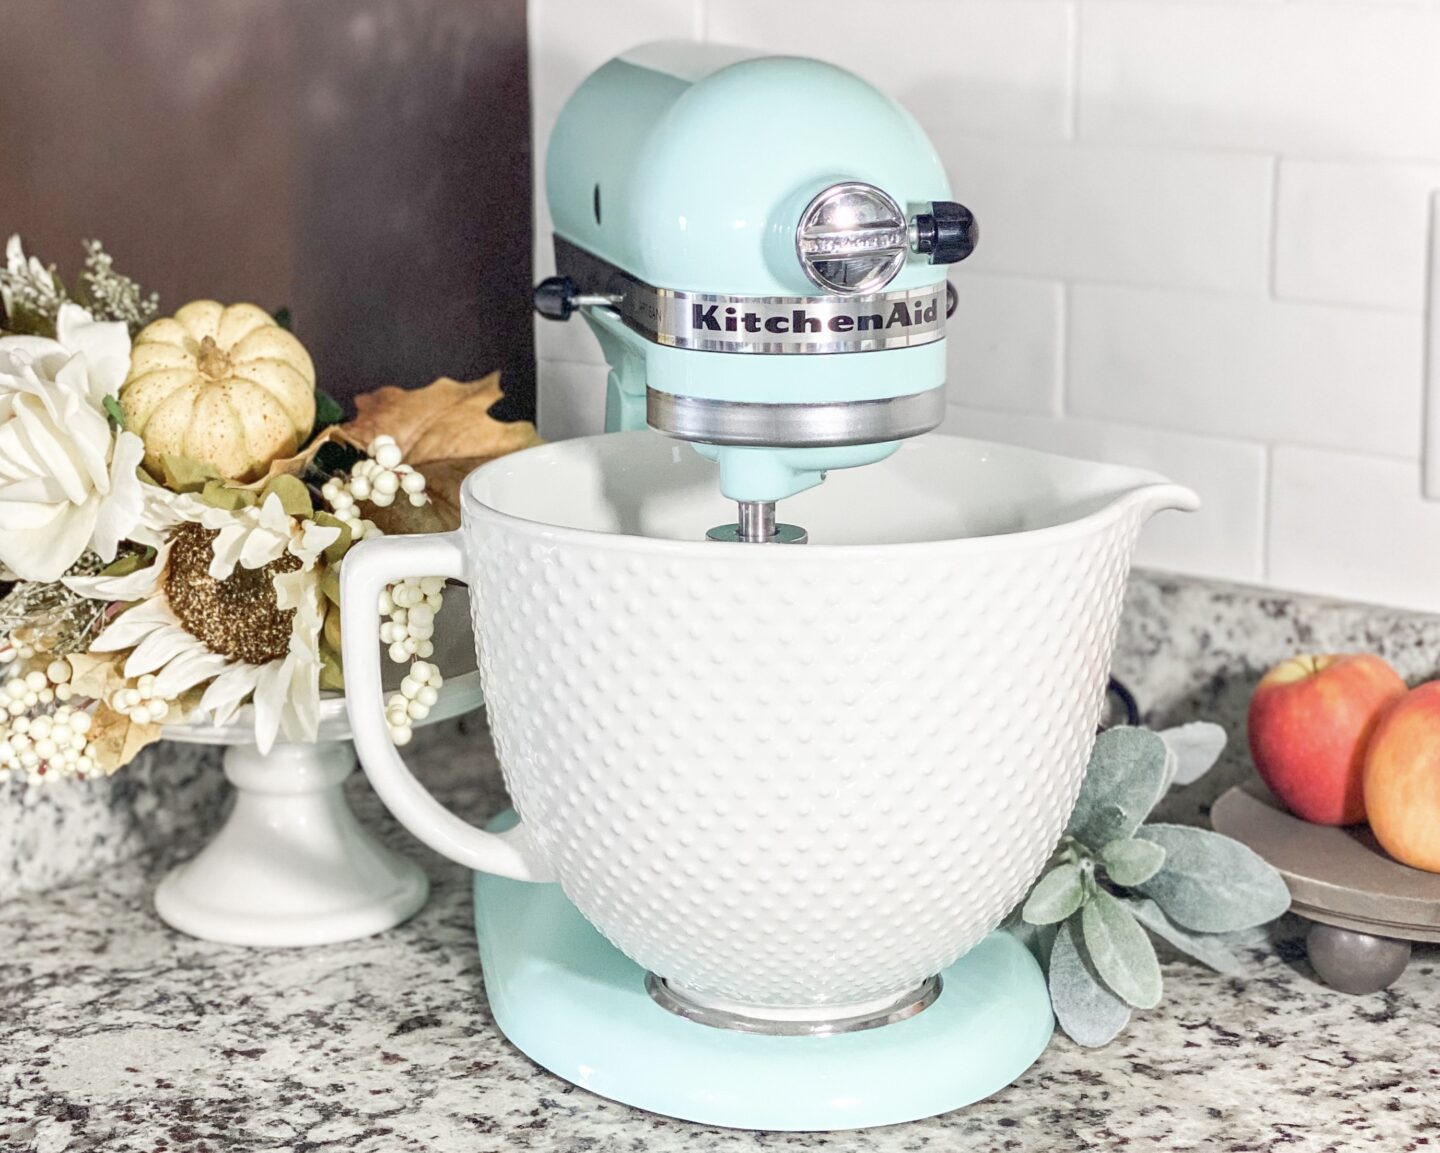 KitchenAid Hobnail Bowl Unboxing, Review, & My Current Bowl Collection!